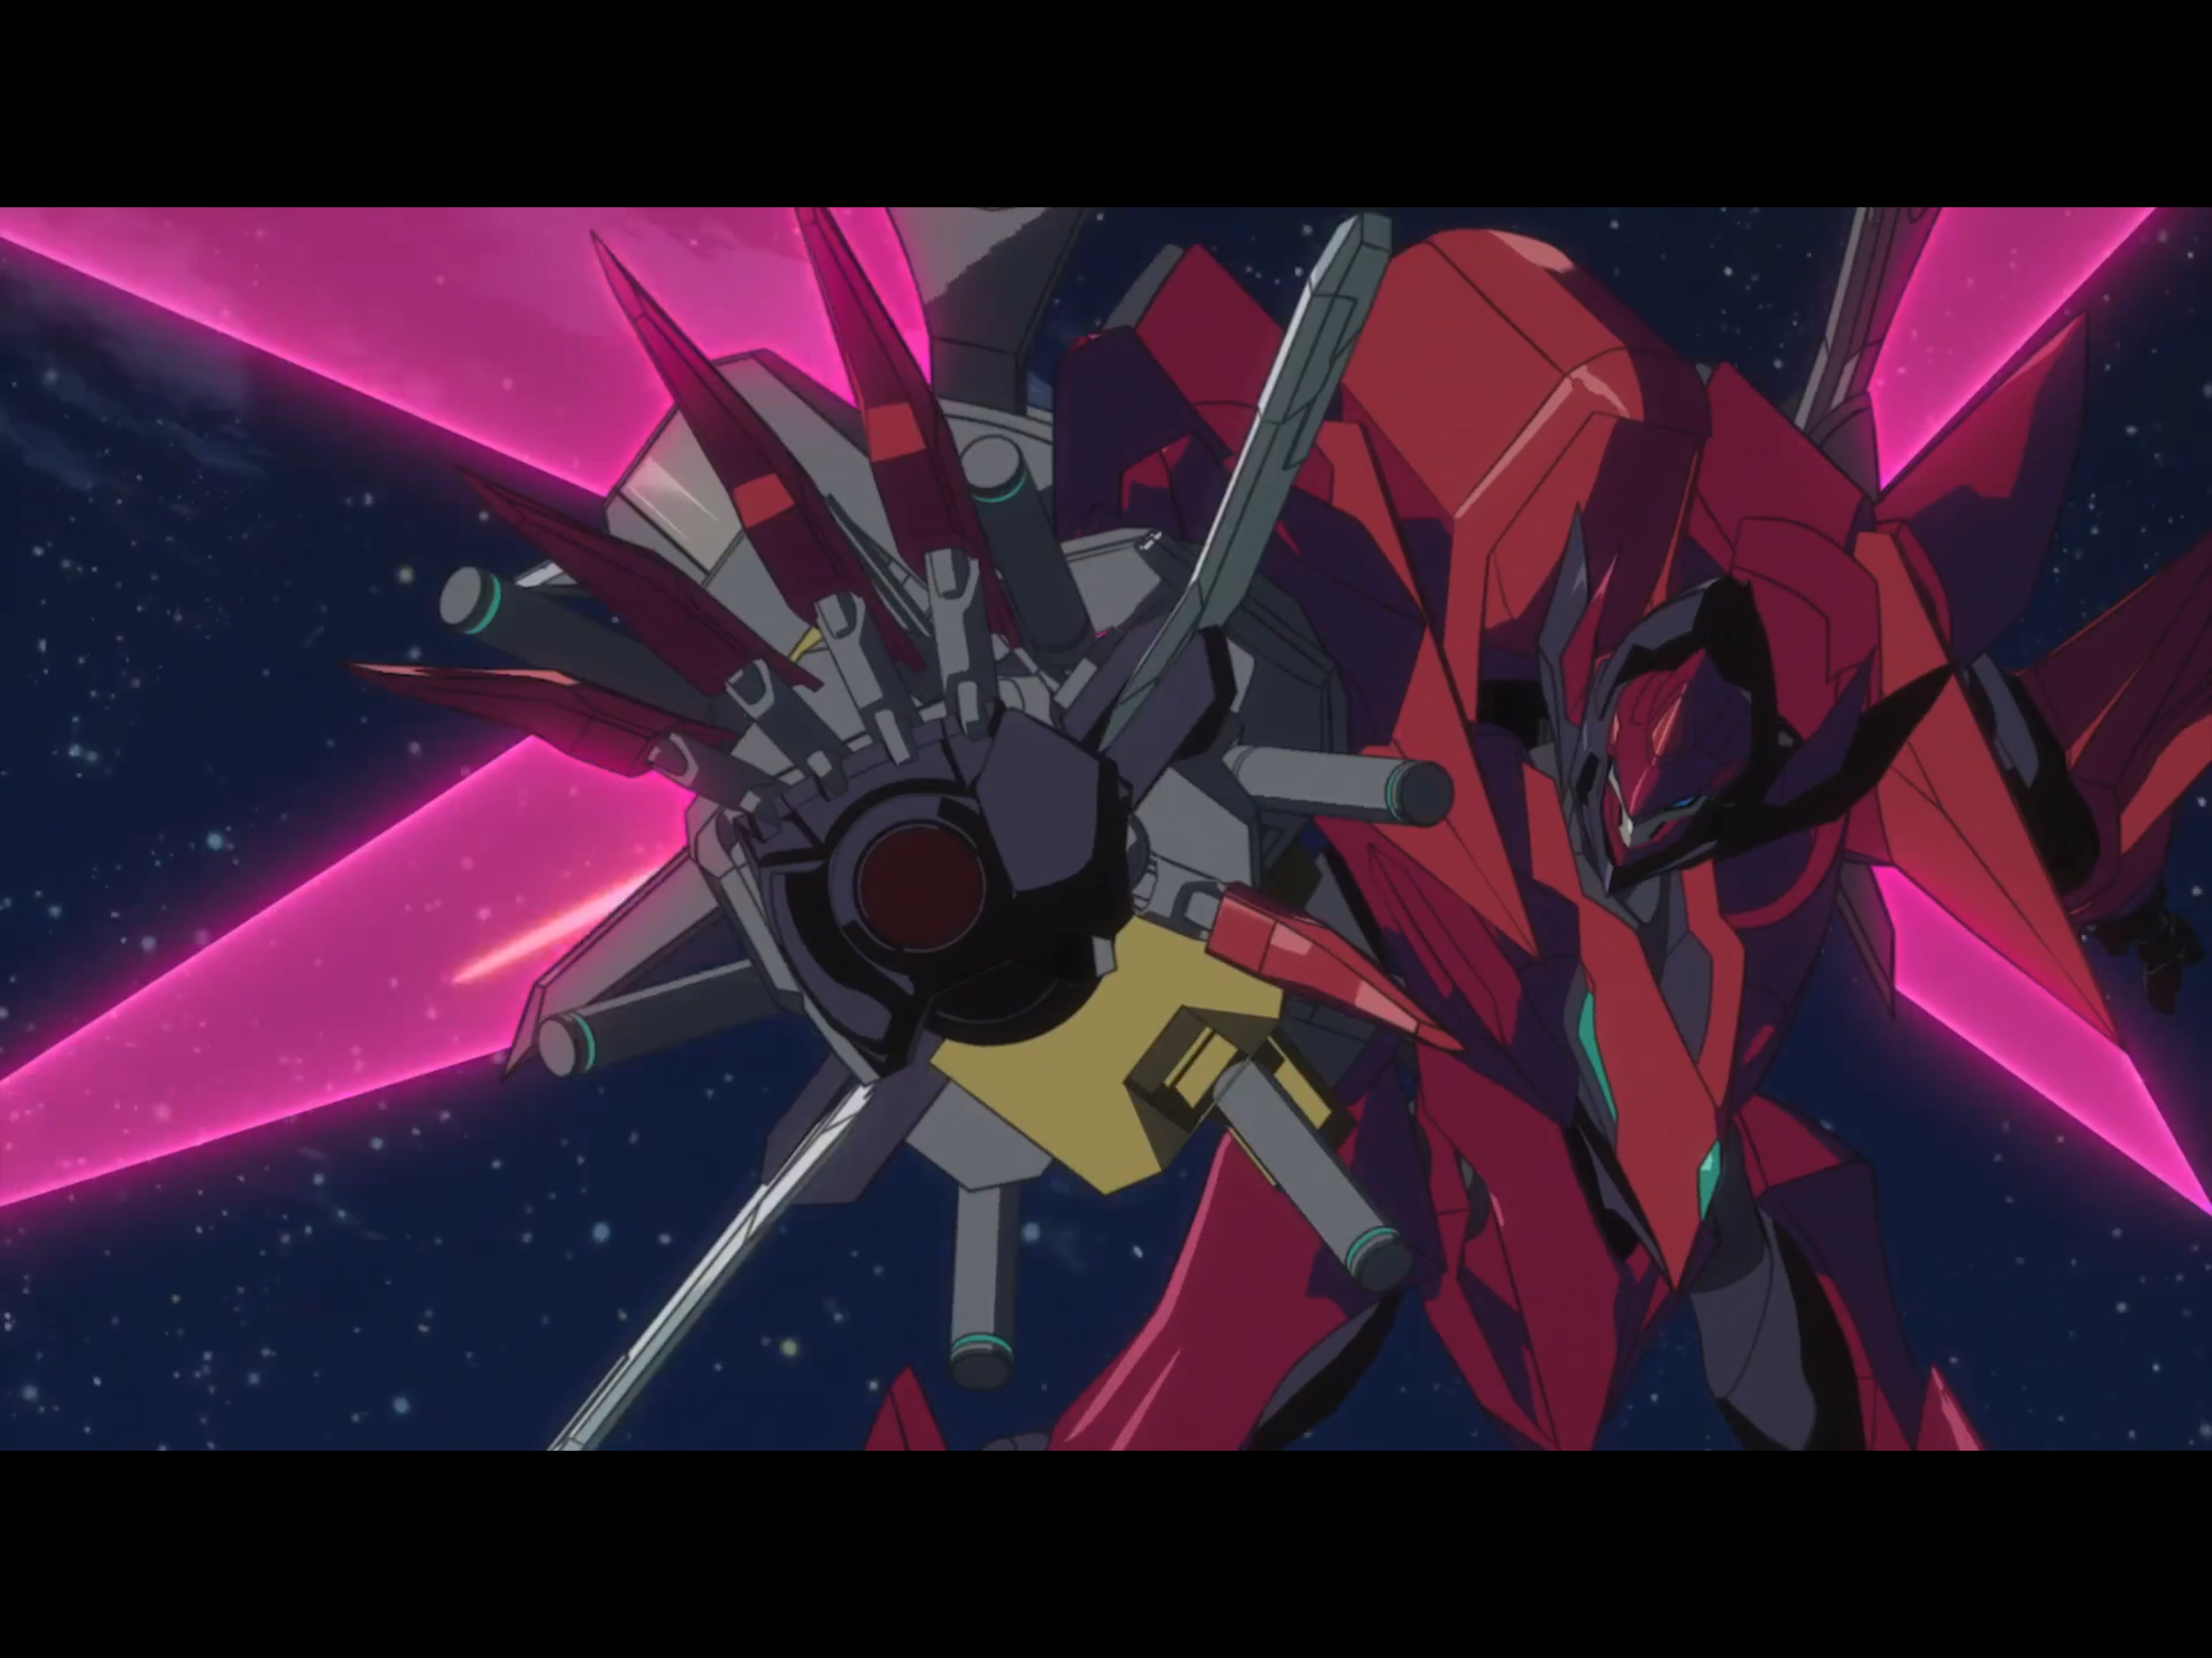 Pin by Suneater D9 on Mecha Aa Ron Code geass, Coding